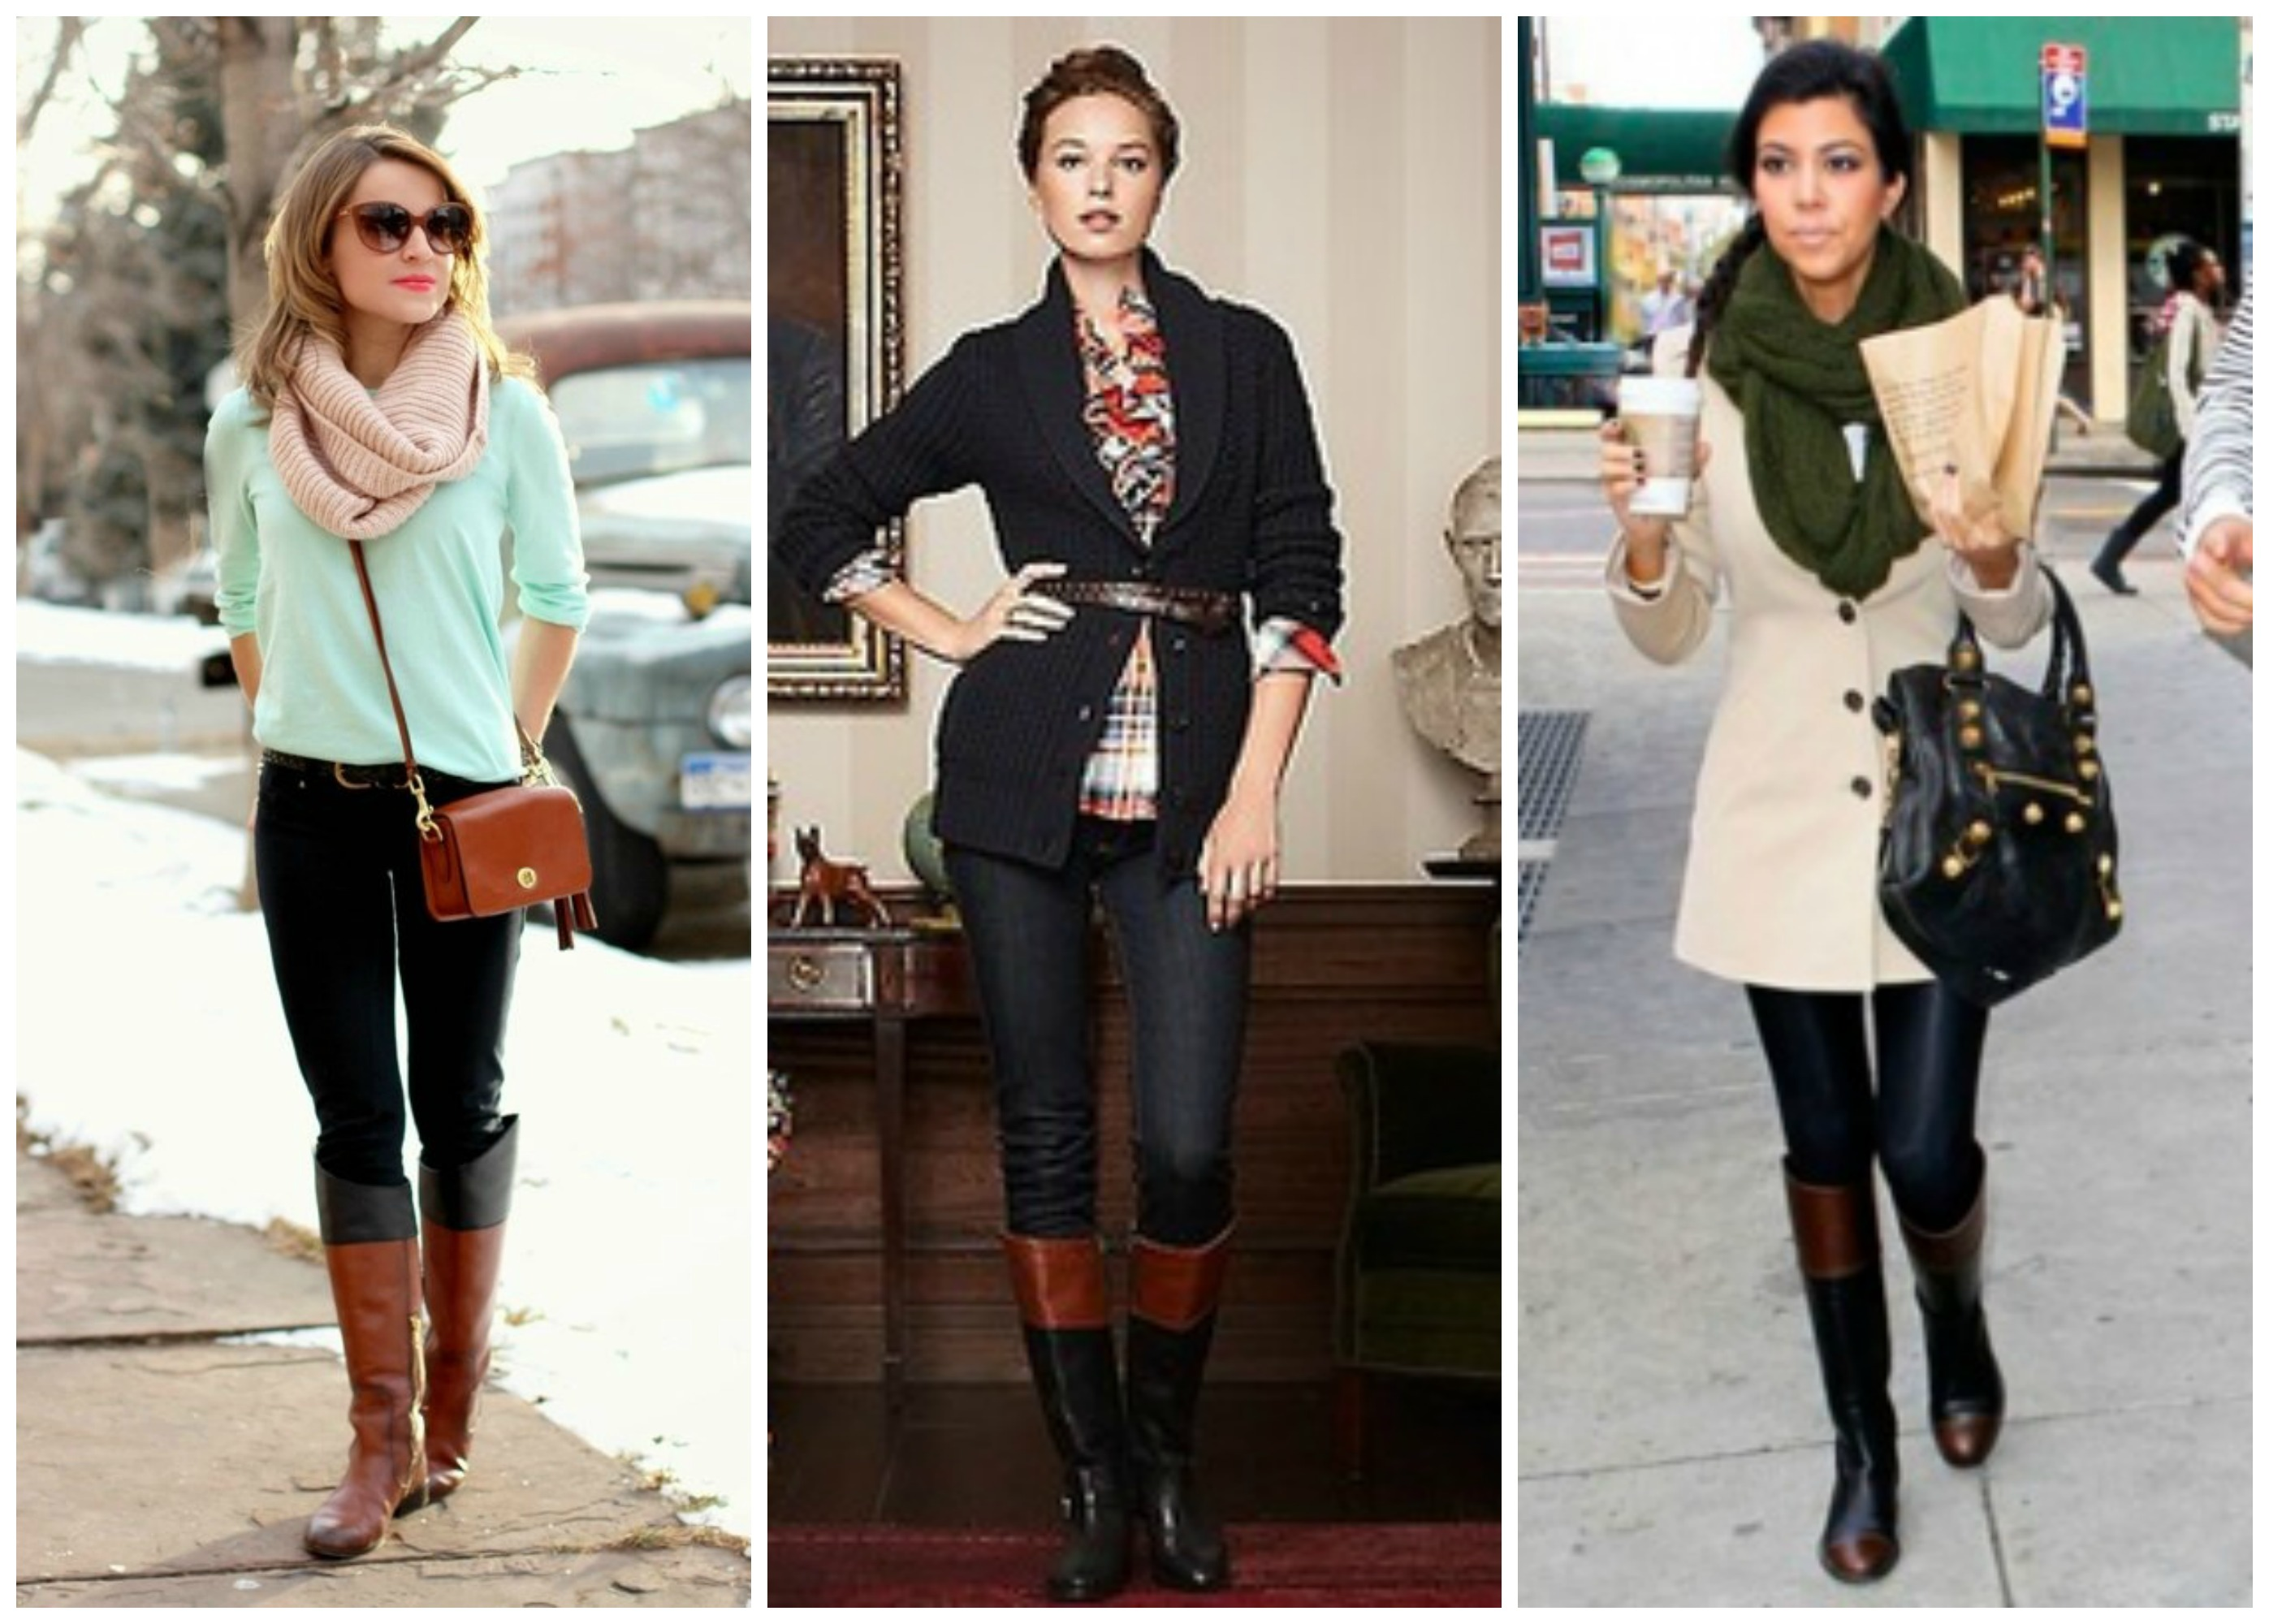 Riding Boots For Women Outfits With Unique Image In